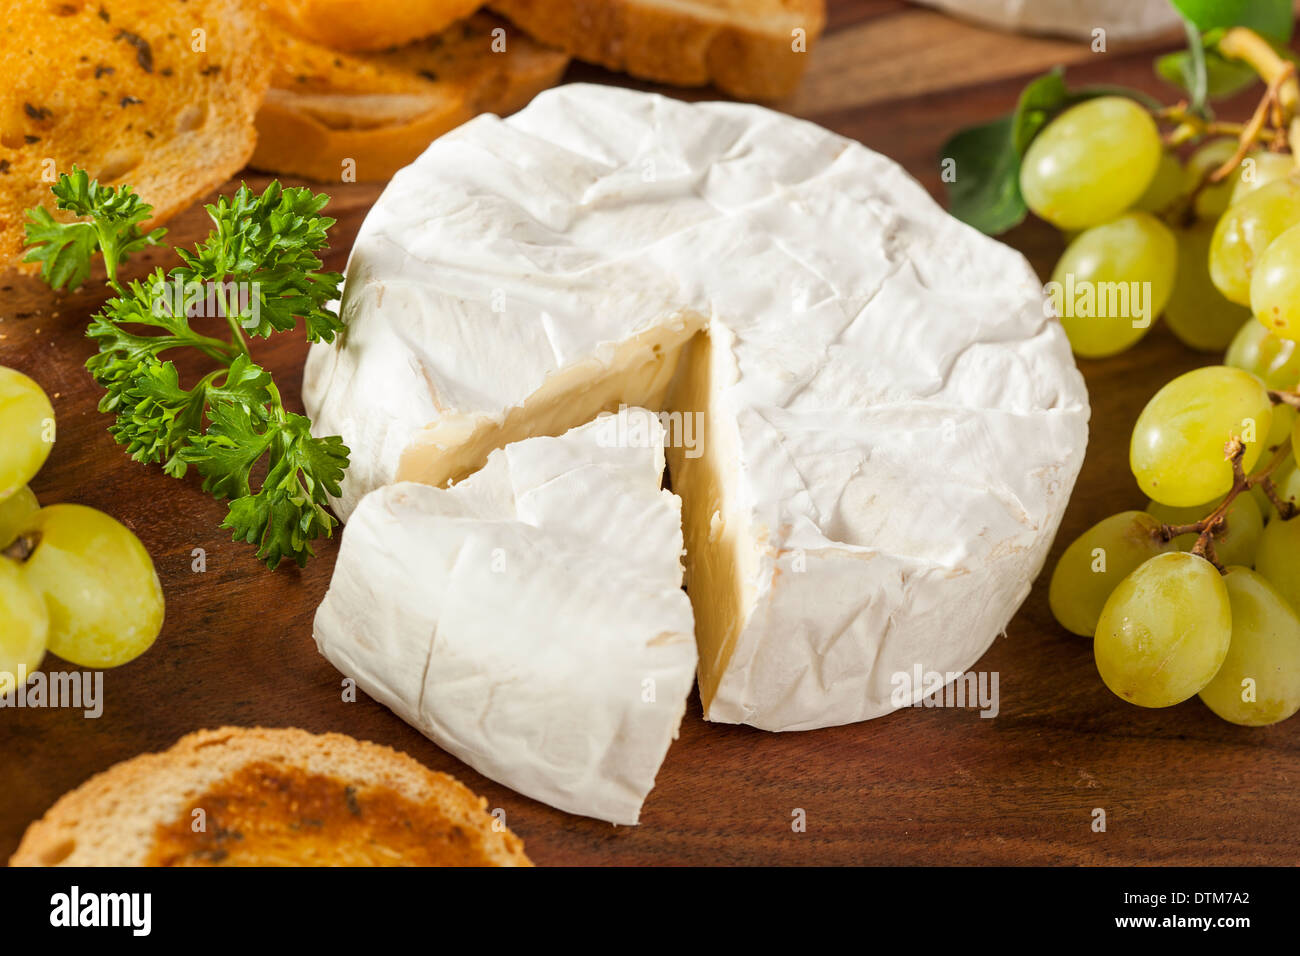 Organic Homemade White Brie Cheese with Bread and Grapes - Stock Image